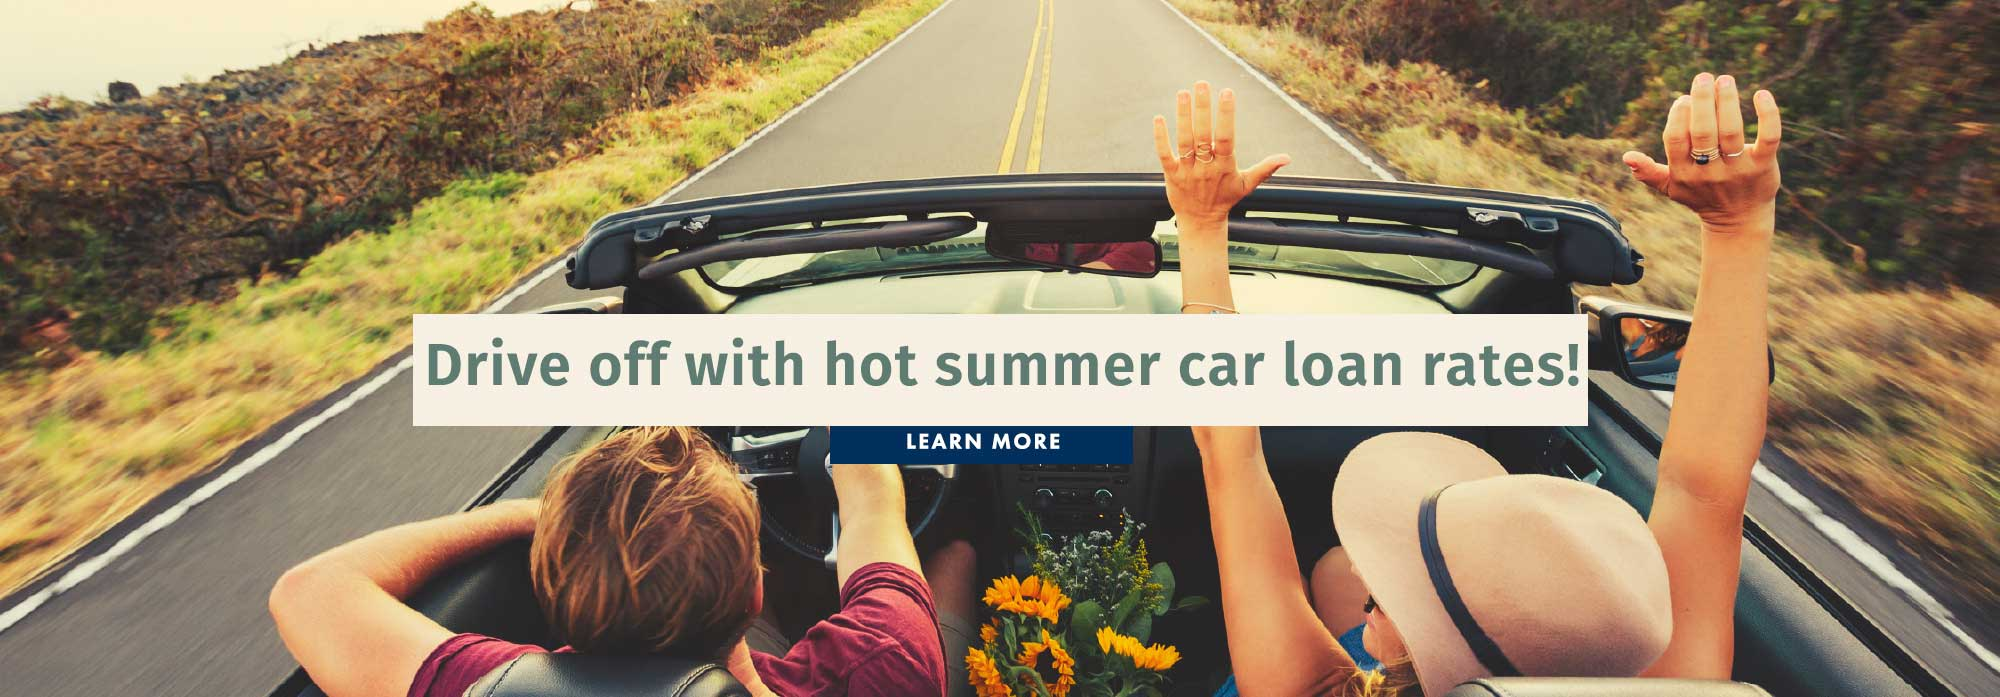 Drive off with hot summer car loan rates!